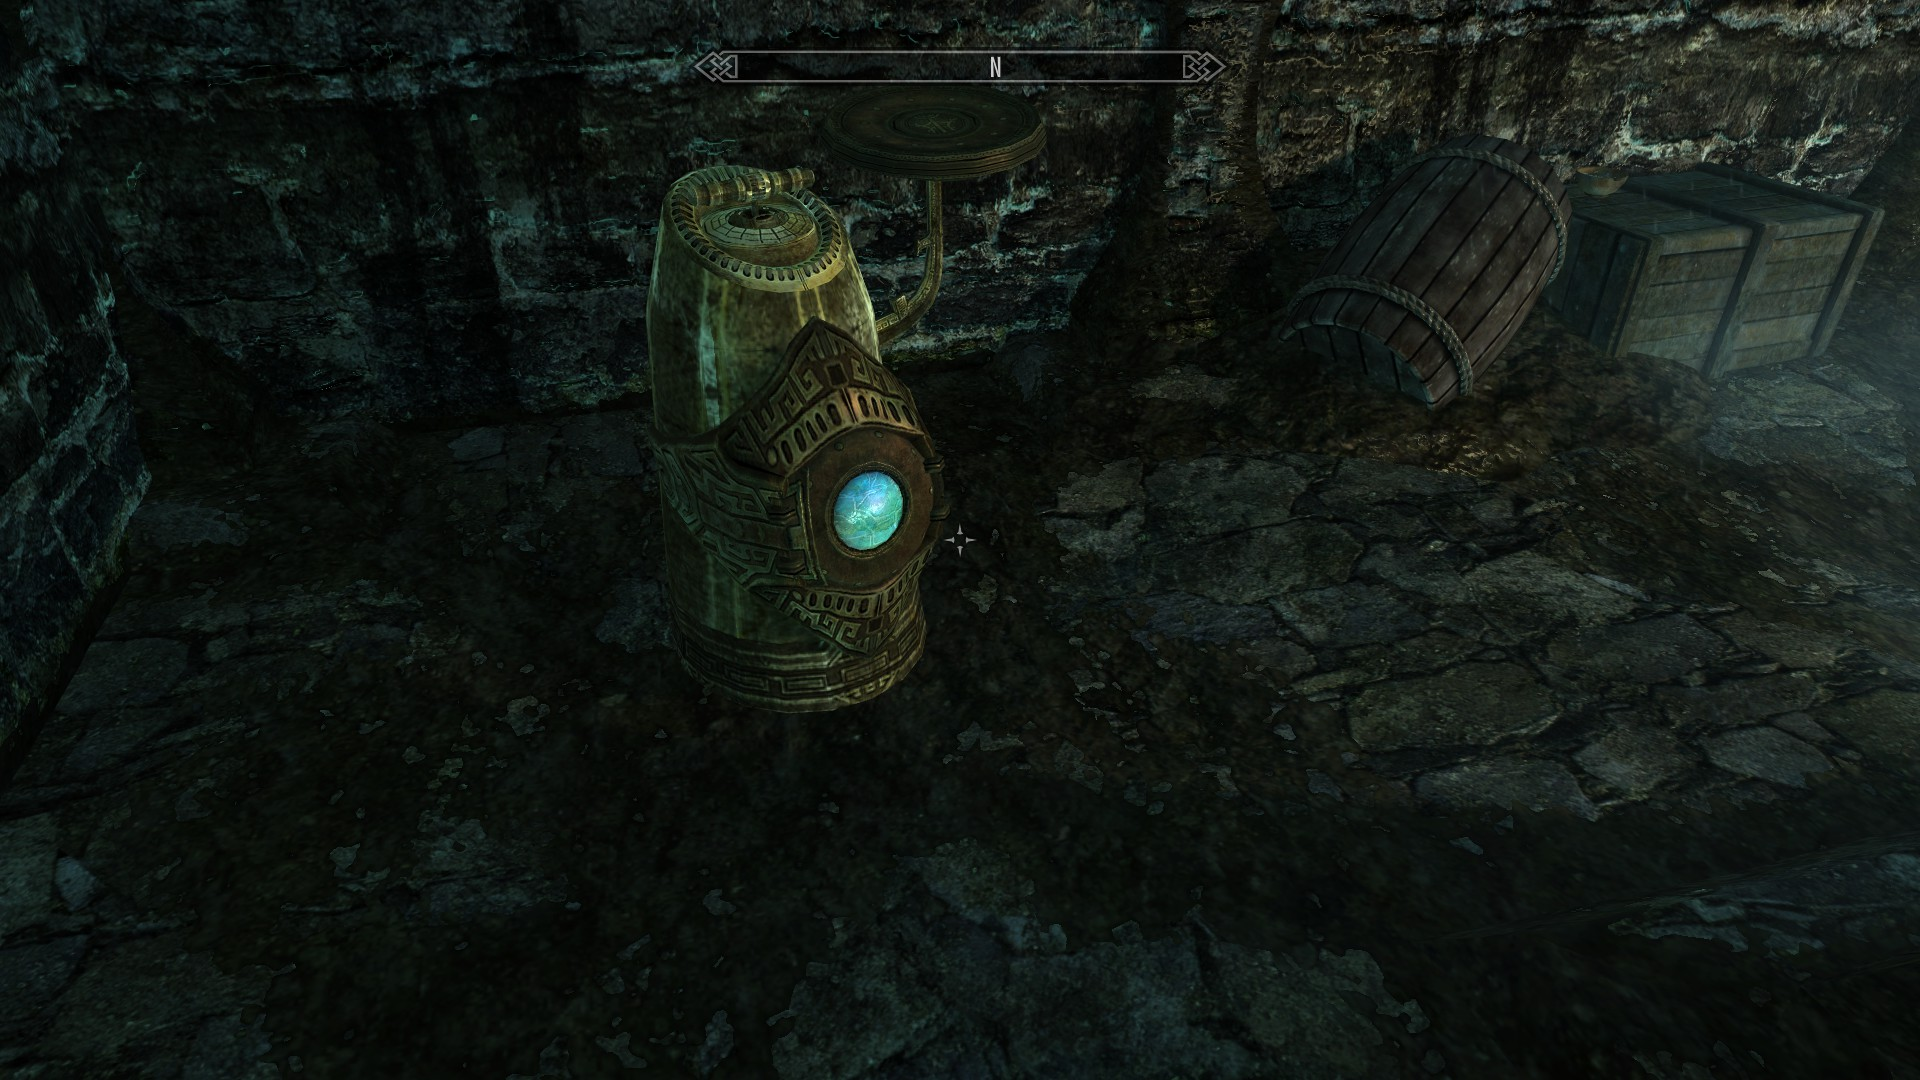 Catchy Dice Page Games Bytes Inside A Rubbish Strewn Chamber Y Found An Odd Looking Contraption Thatlooked Dwemer Y Could Not Come To A Conclusion As To Itsction houzz-03 You Hear A Strange Feral Screech